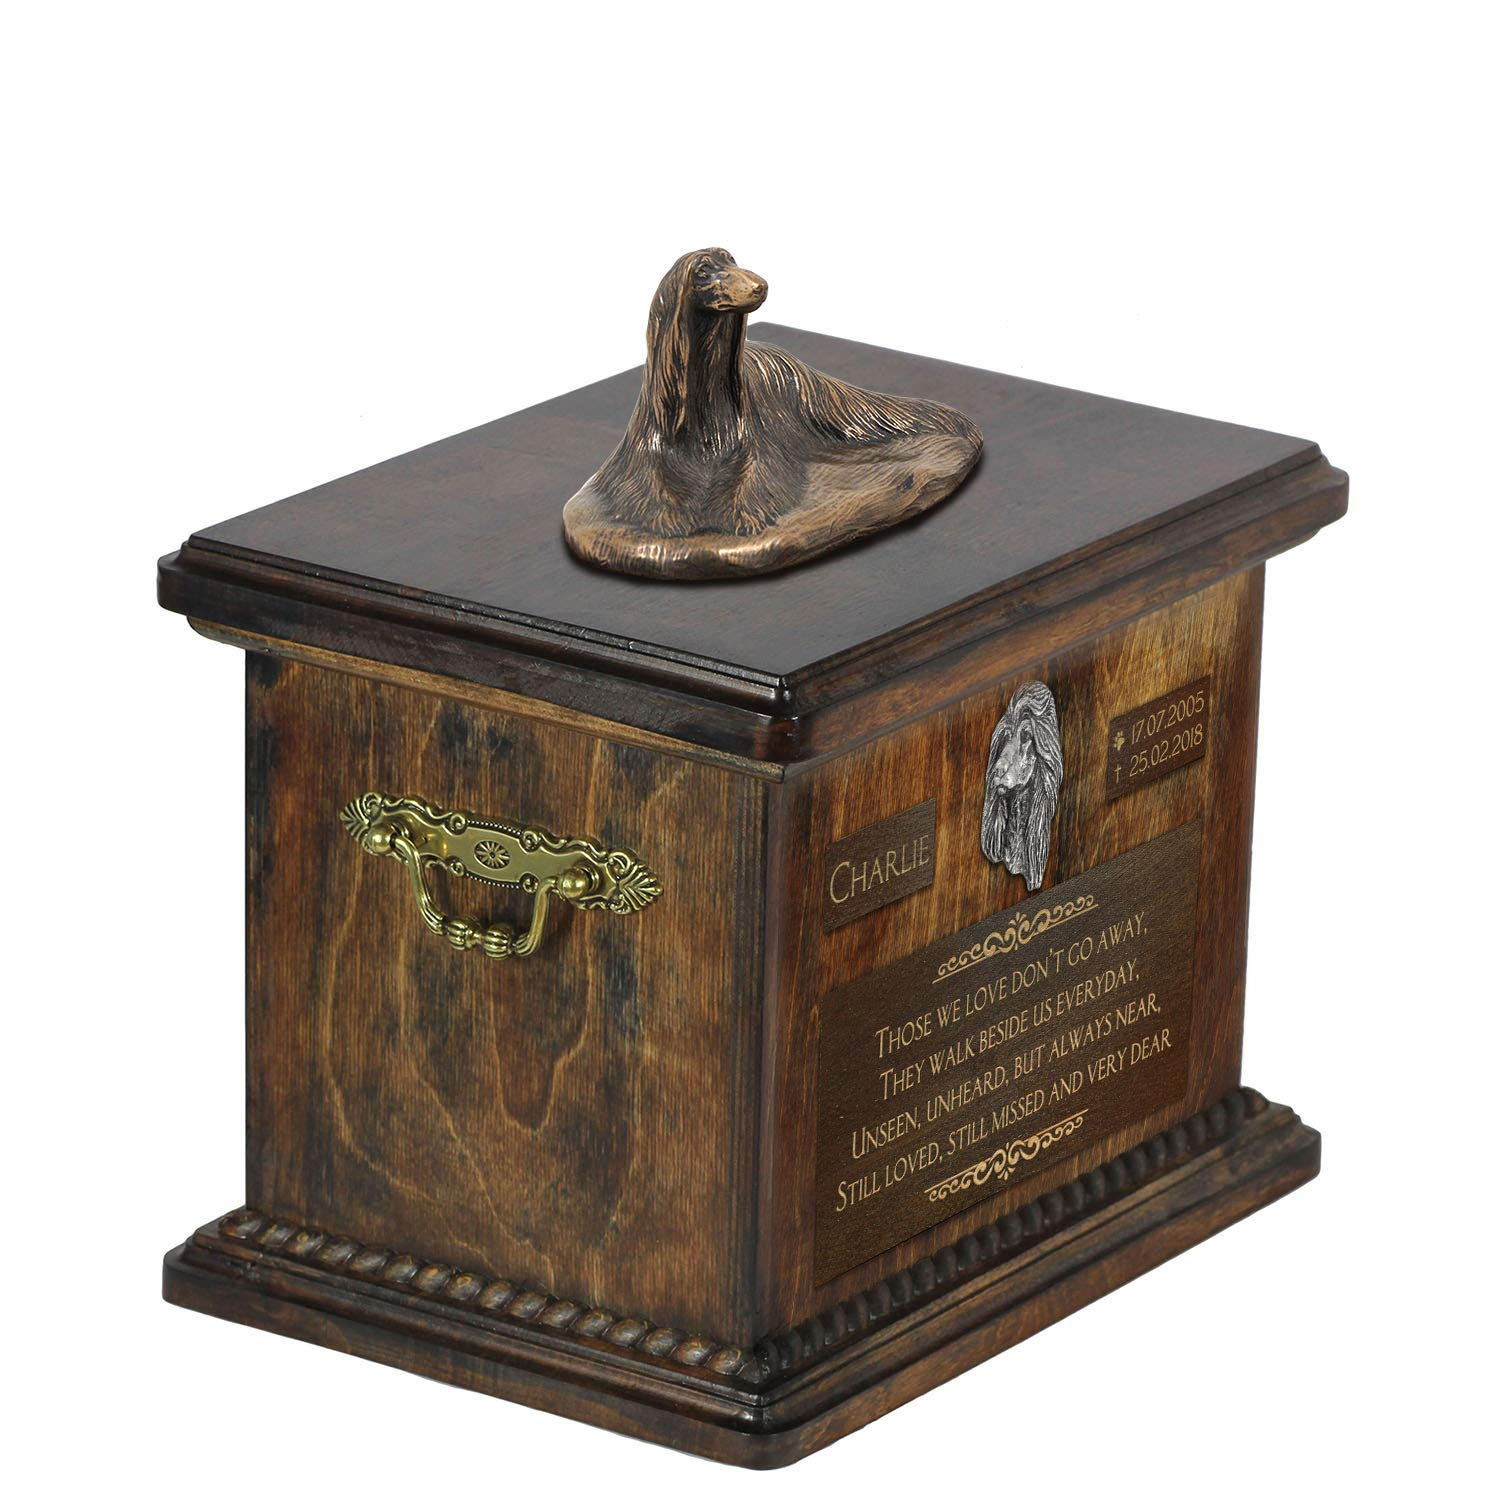 Afghan Hound lying 2, Urn for Dog Ashes Memorial with Statue, Pet's Name and Quote ArtDog Personalized